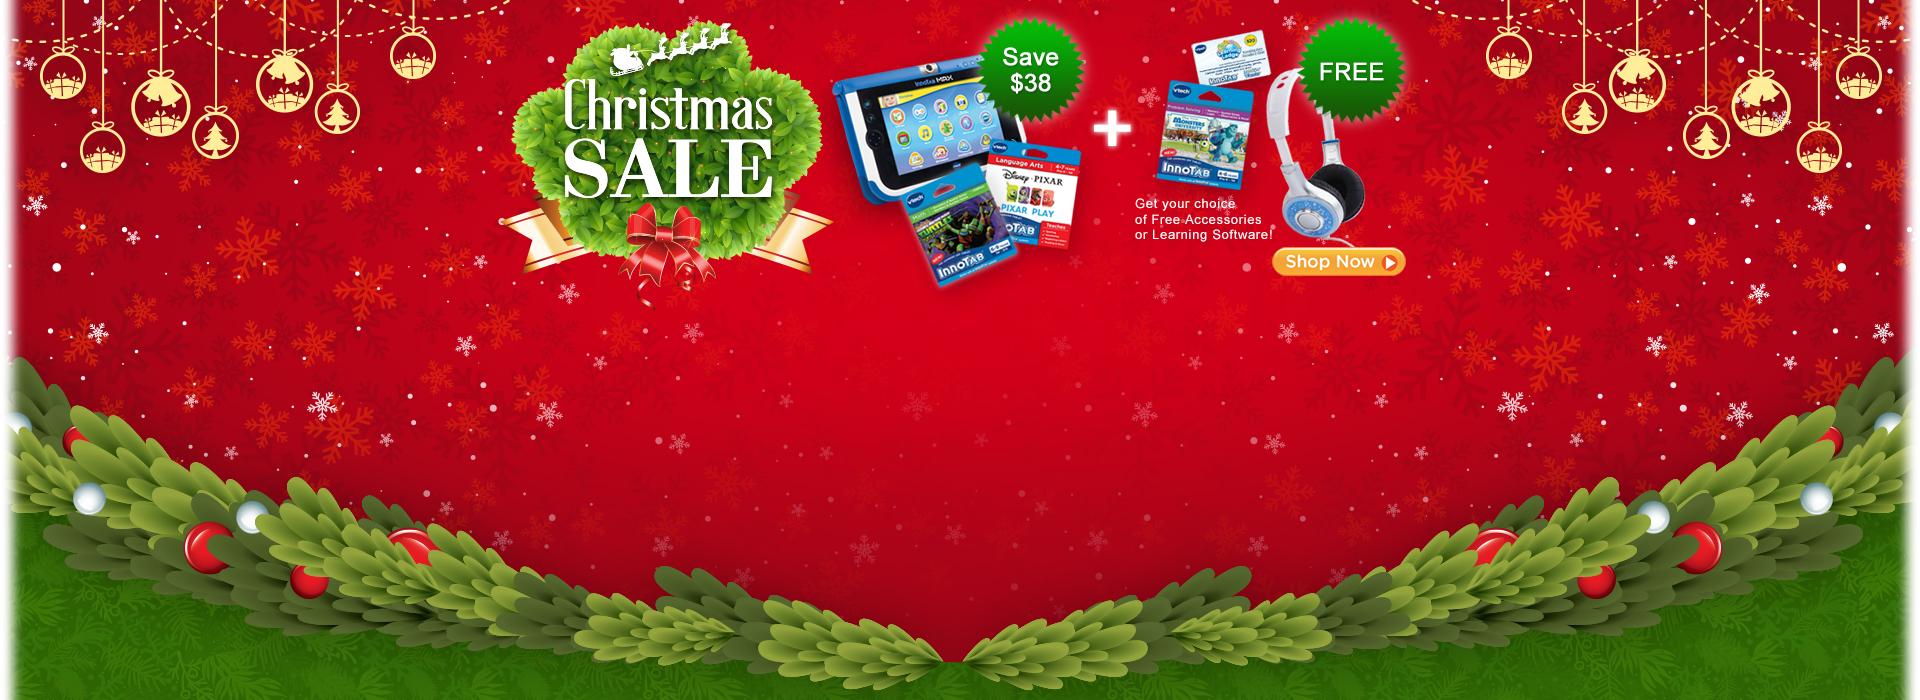 InnoTab Holiday Deals